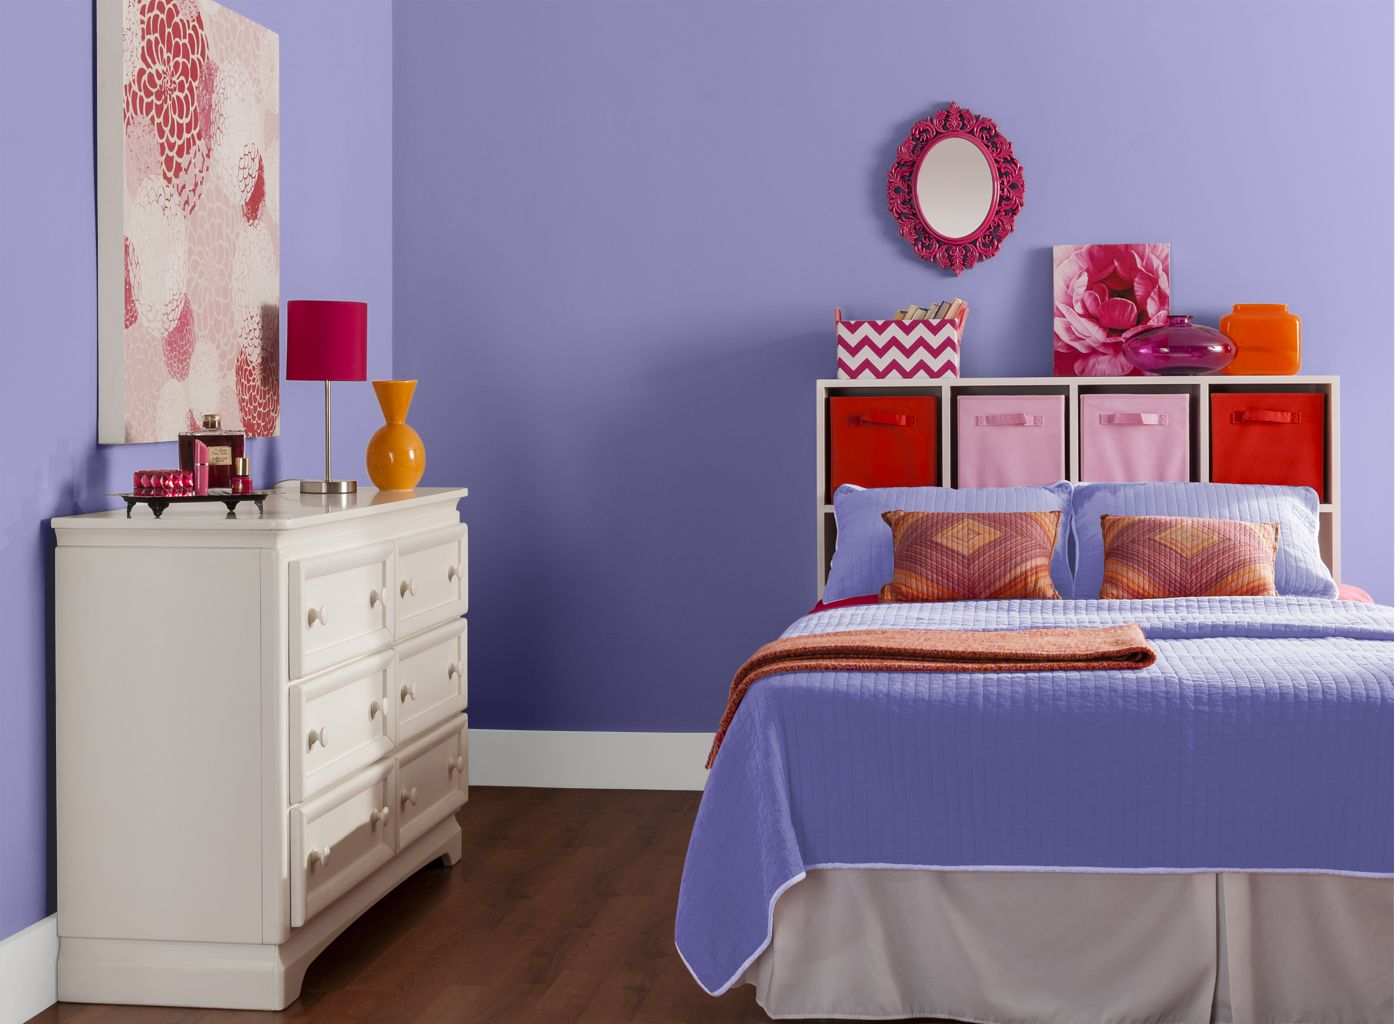 dewy iris painted room bedroom in dewy iris with images on home depot wall paint colors id=98273